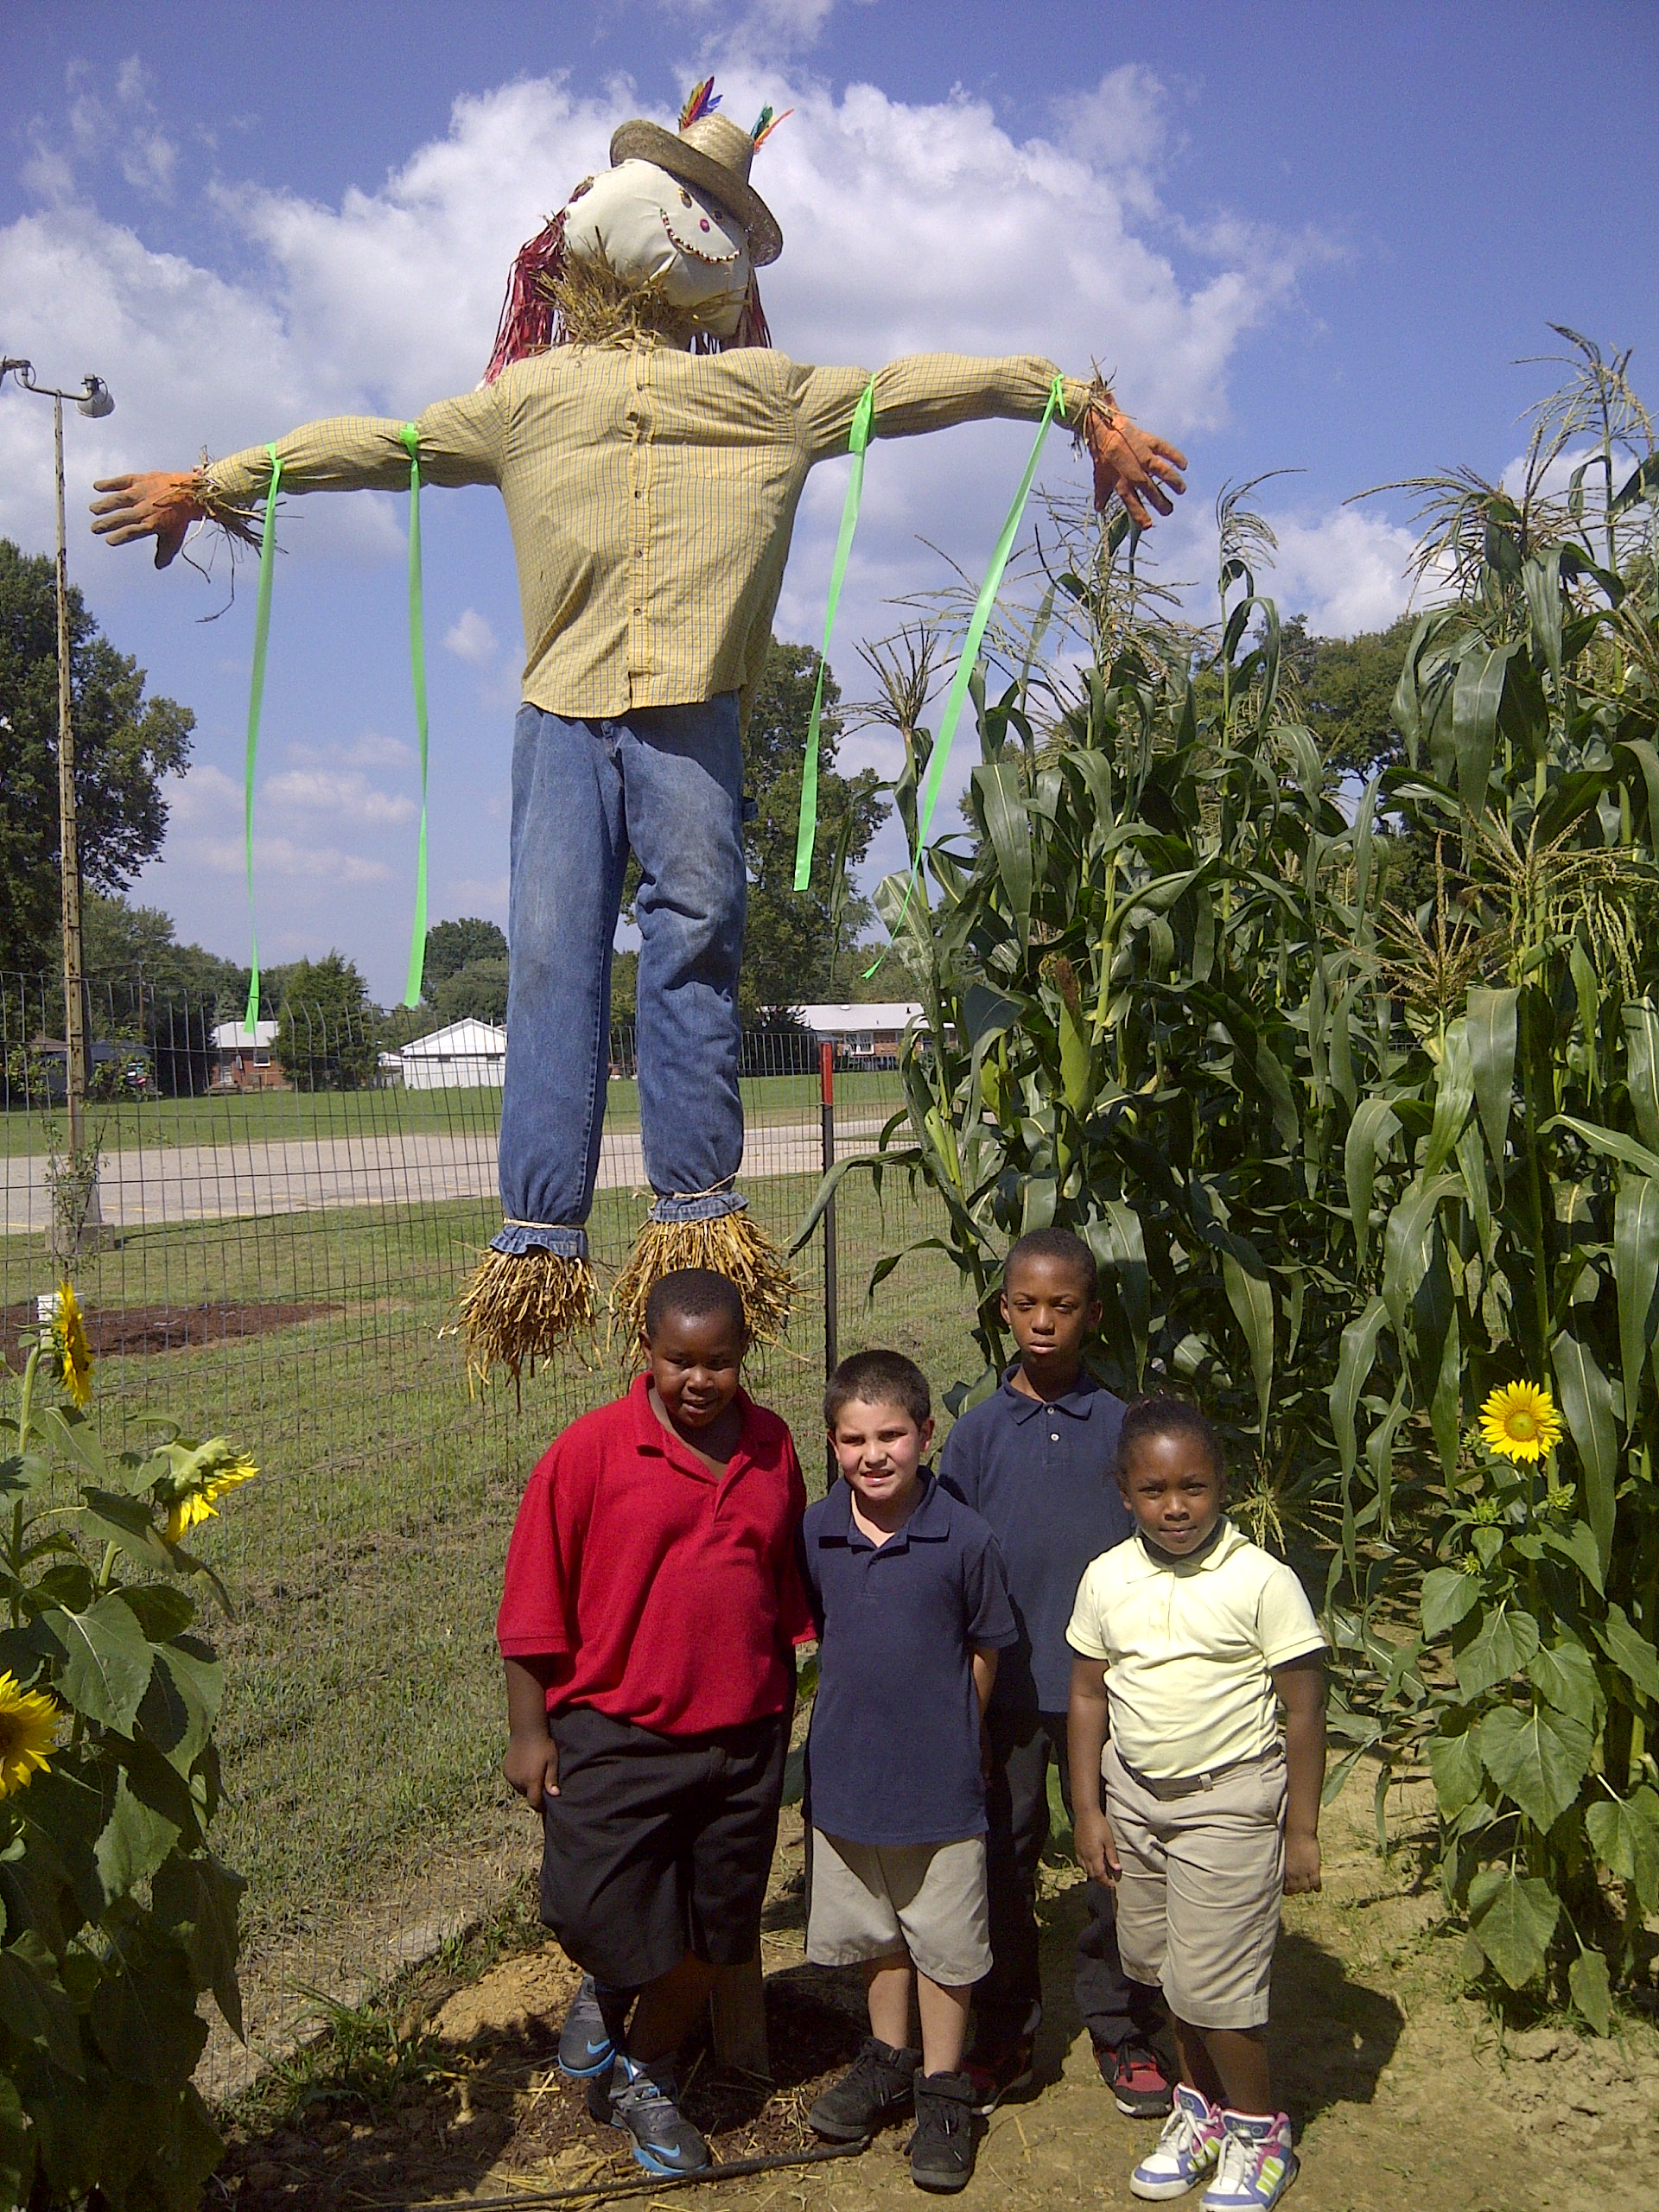 Students standing in front of their garden scarecrow.